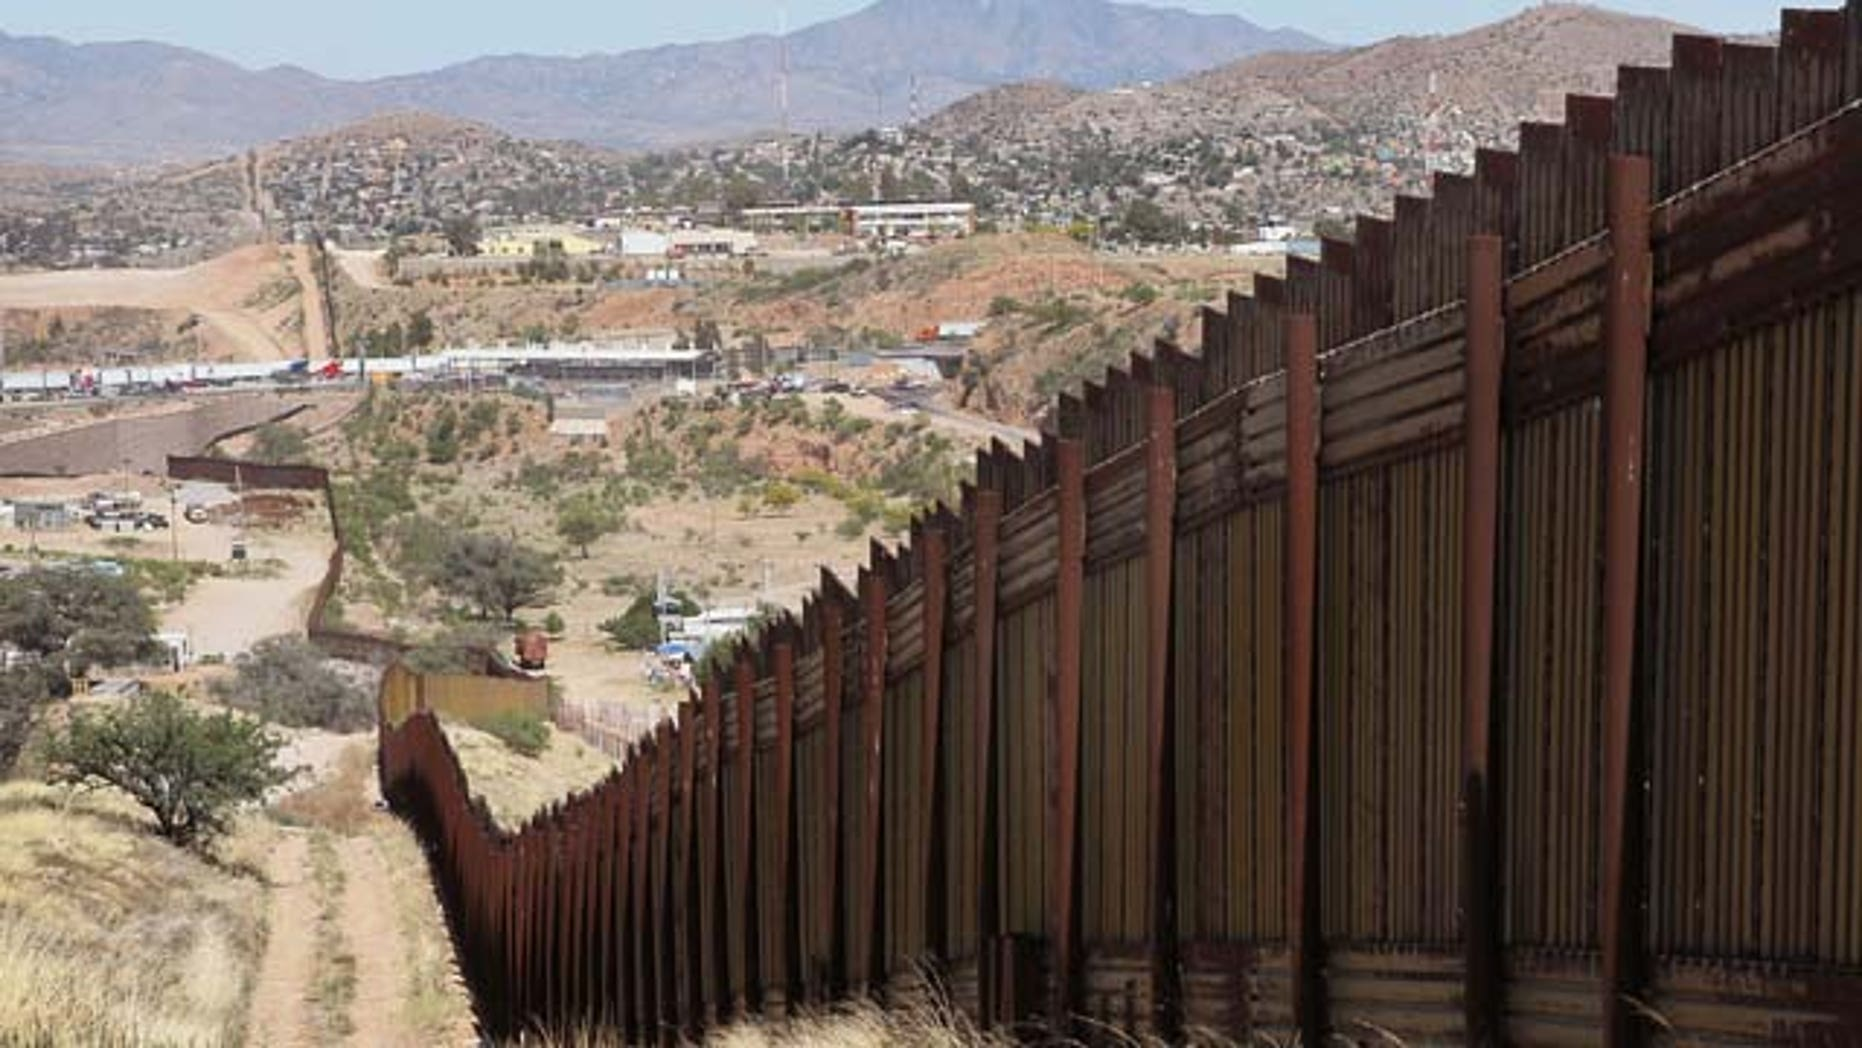 June 02, 2010:  A fence separates the cities of Nogales, Arizona (L) and Nogales, Sonora Mexico, a frequent crossing point for people entering the United States illegally in Nogales, Arizona.